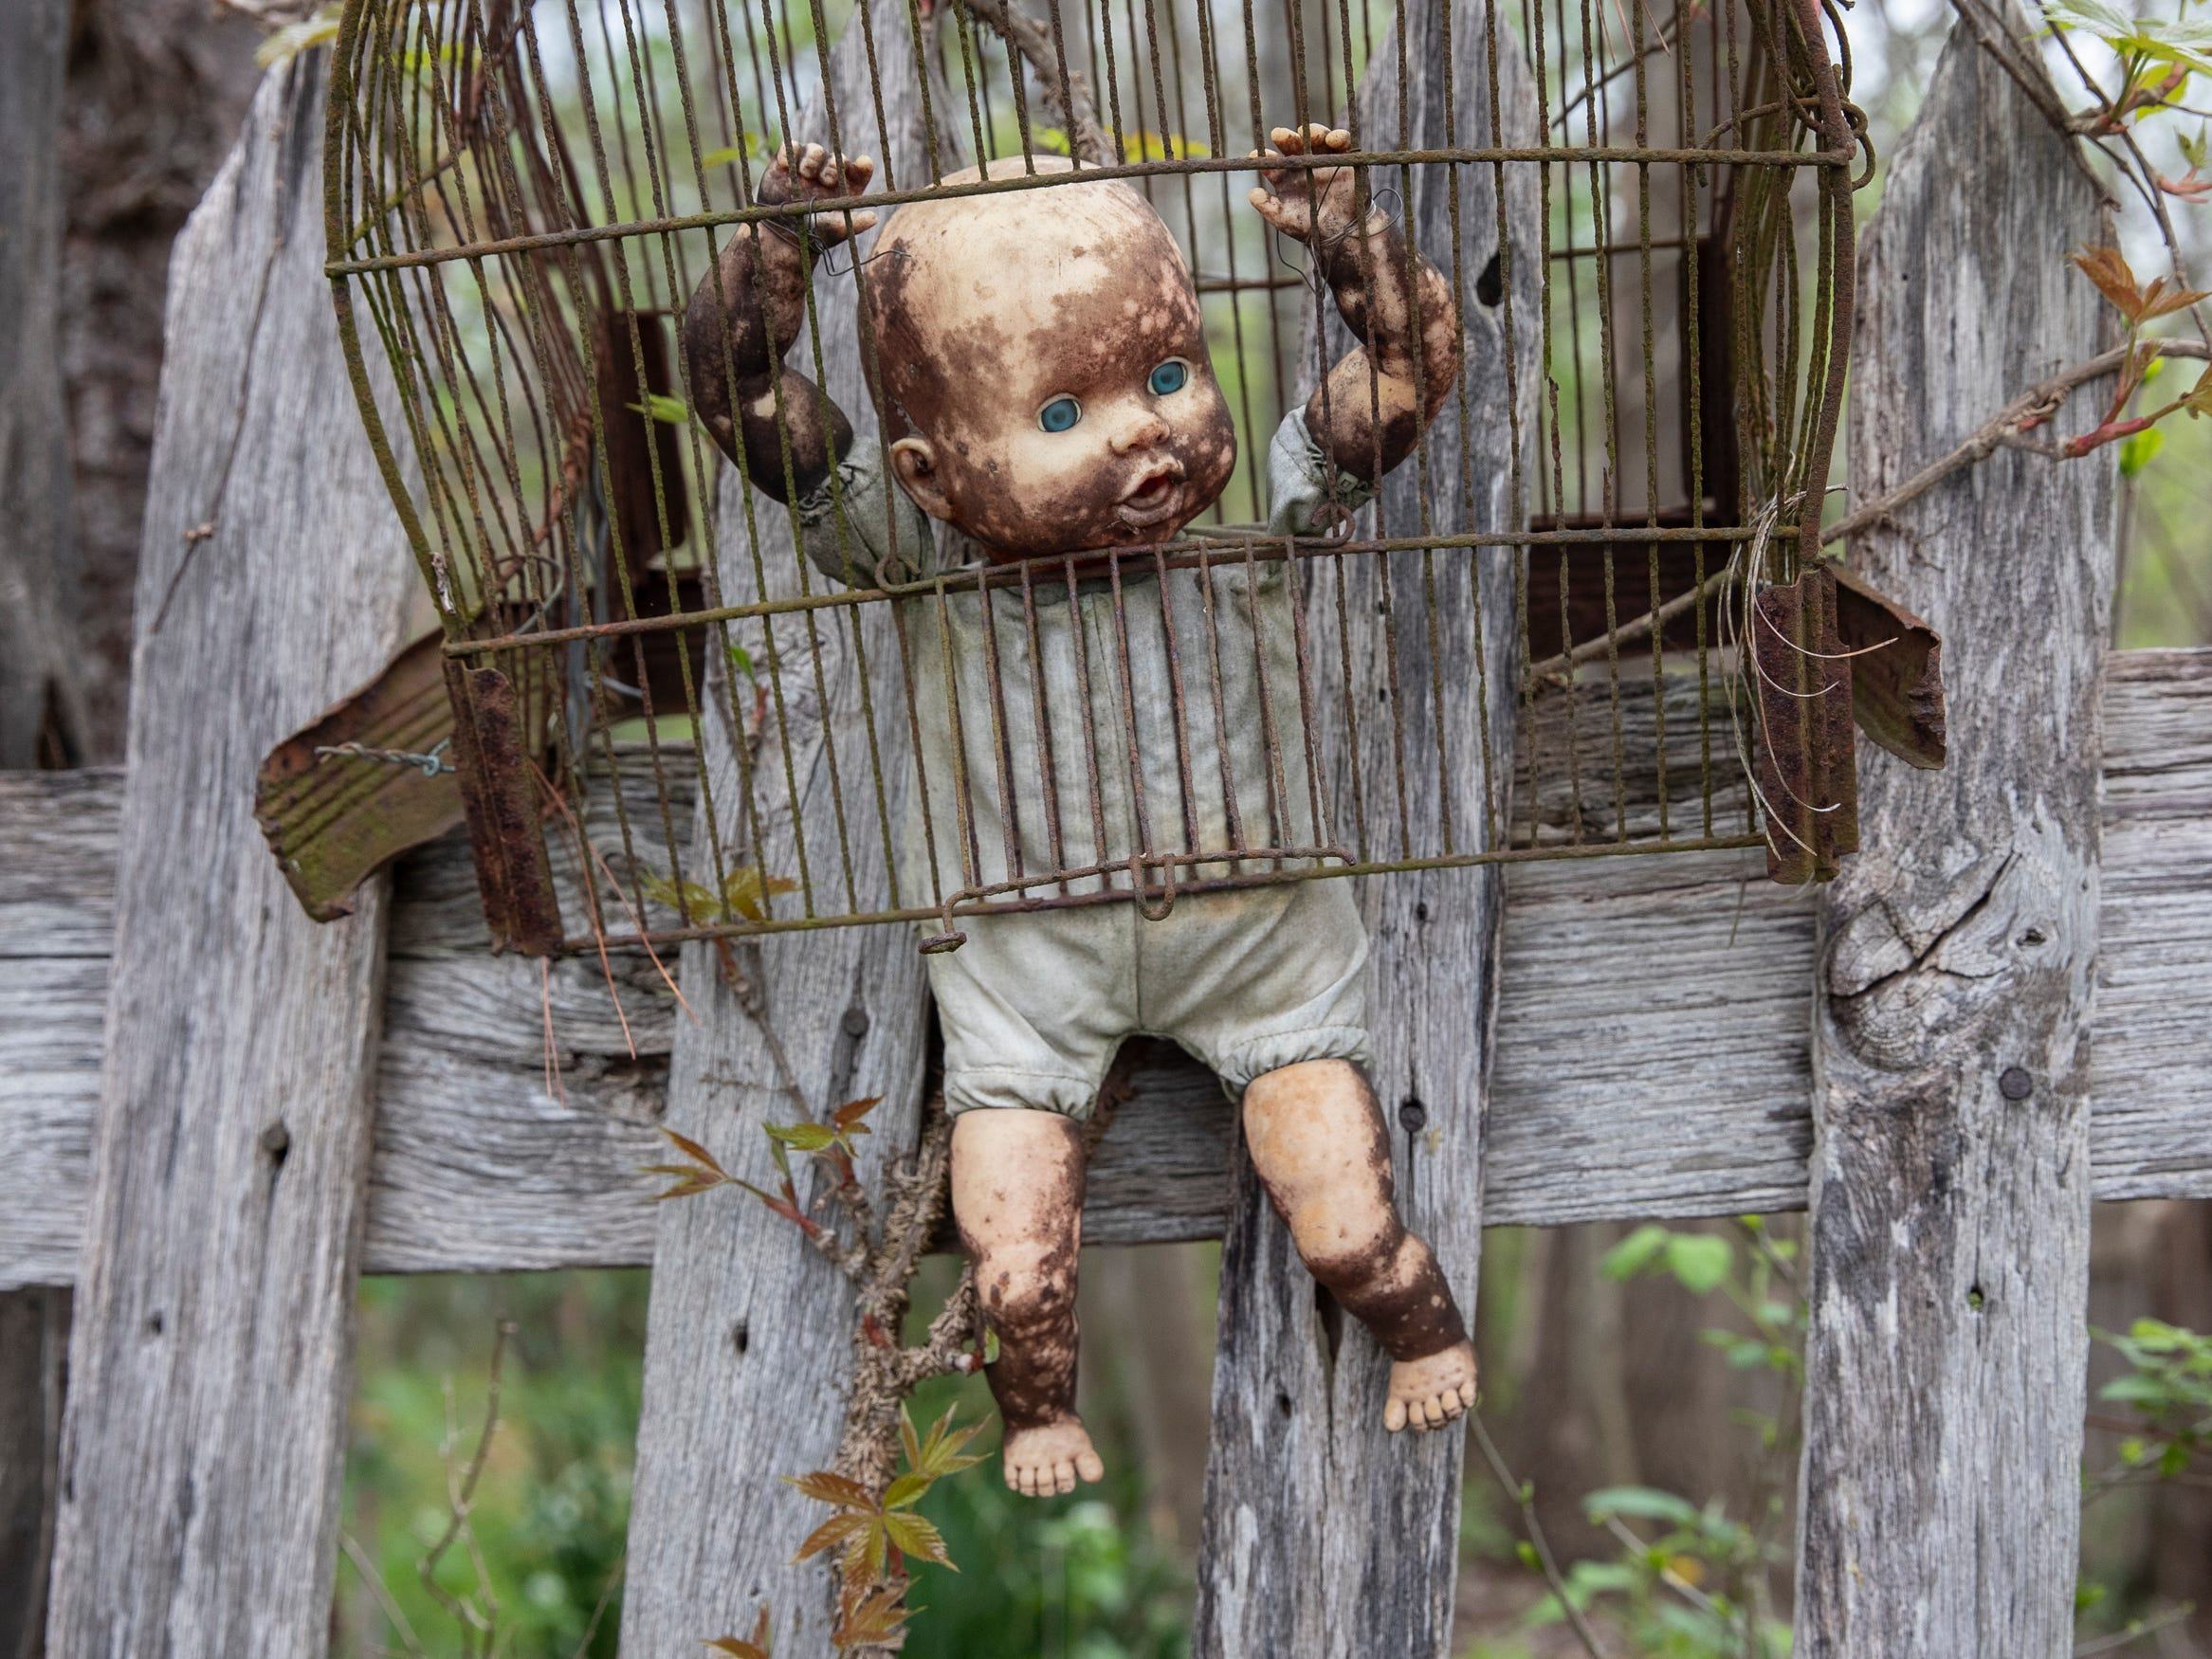 A doll resides in a cage at the home for Wayward Babydolls. April 19, 2019